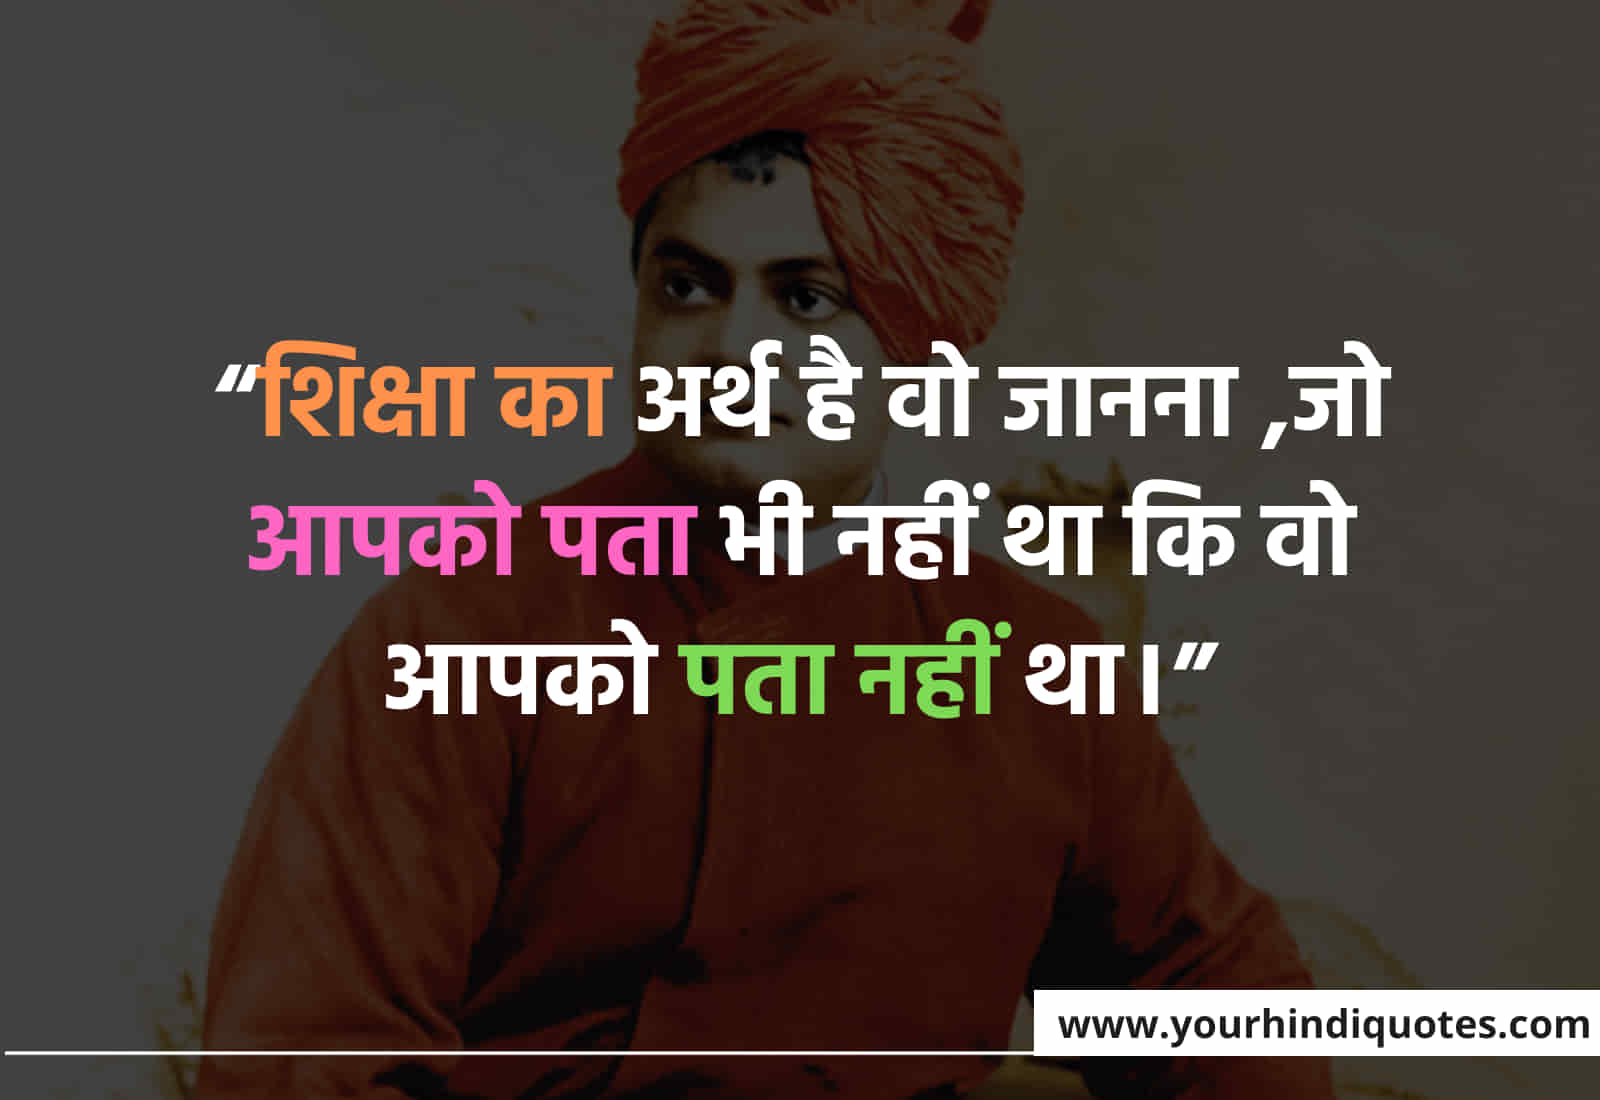 Education Life Quotes In Hindi